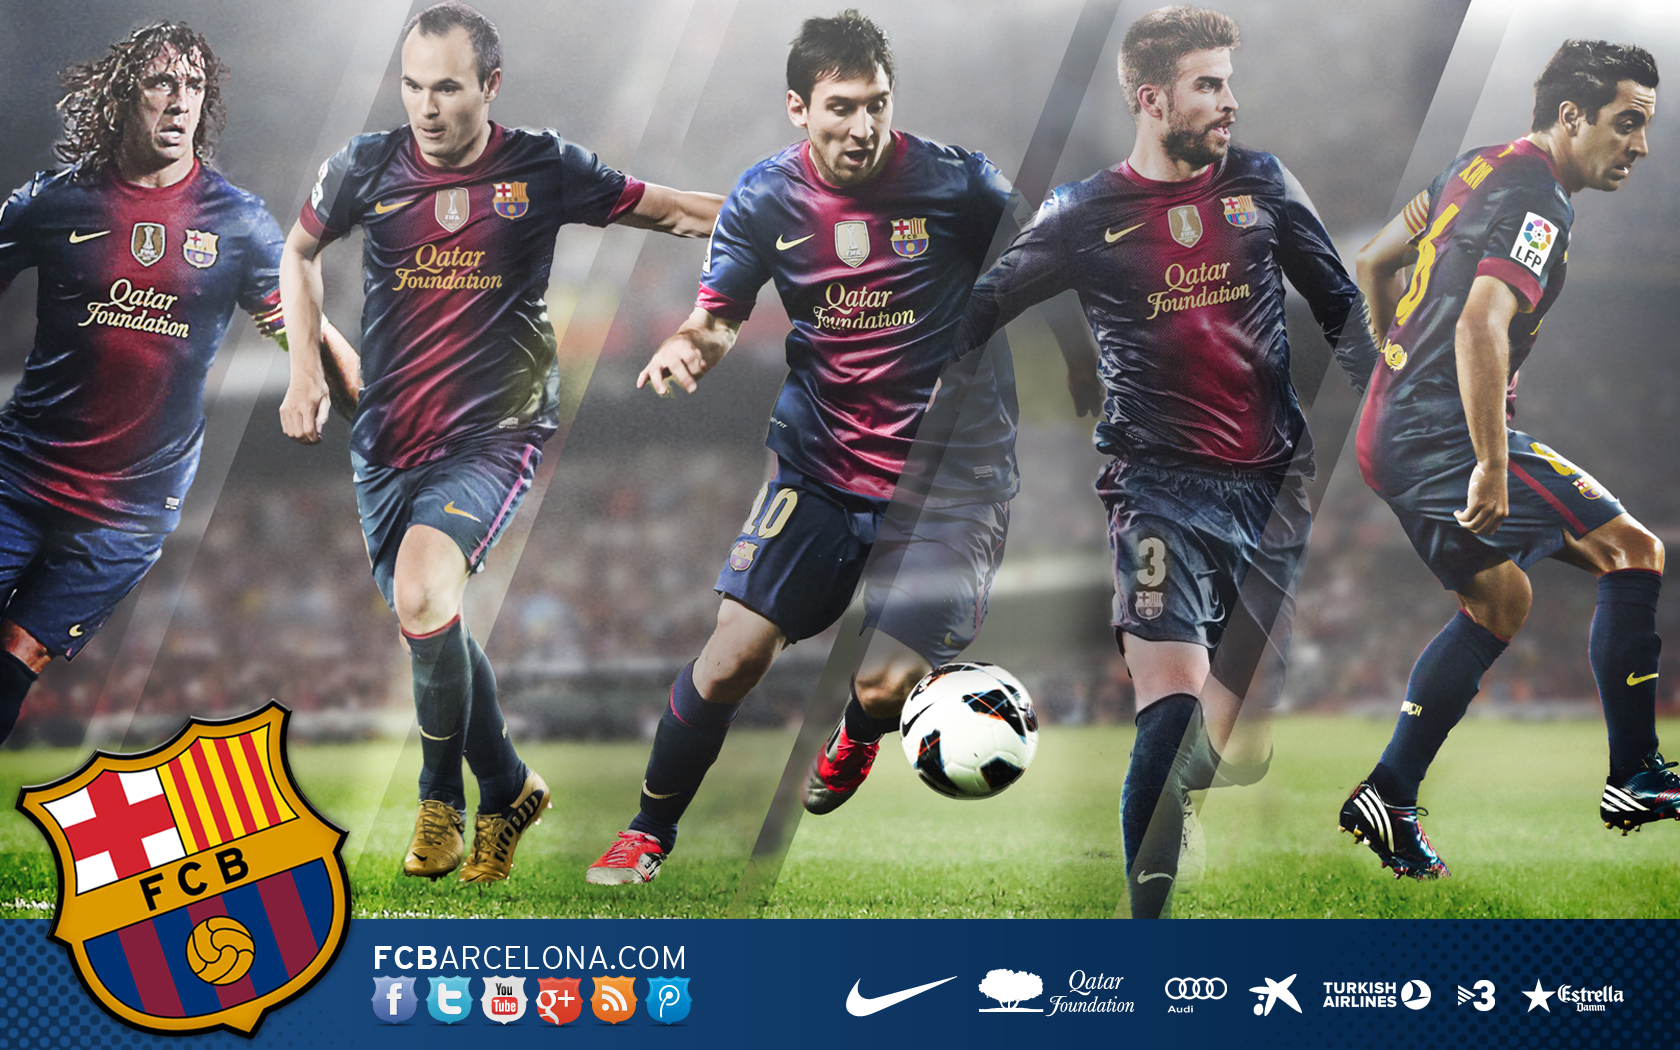 FC Barcelone Wallpaper Promotions